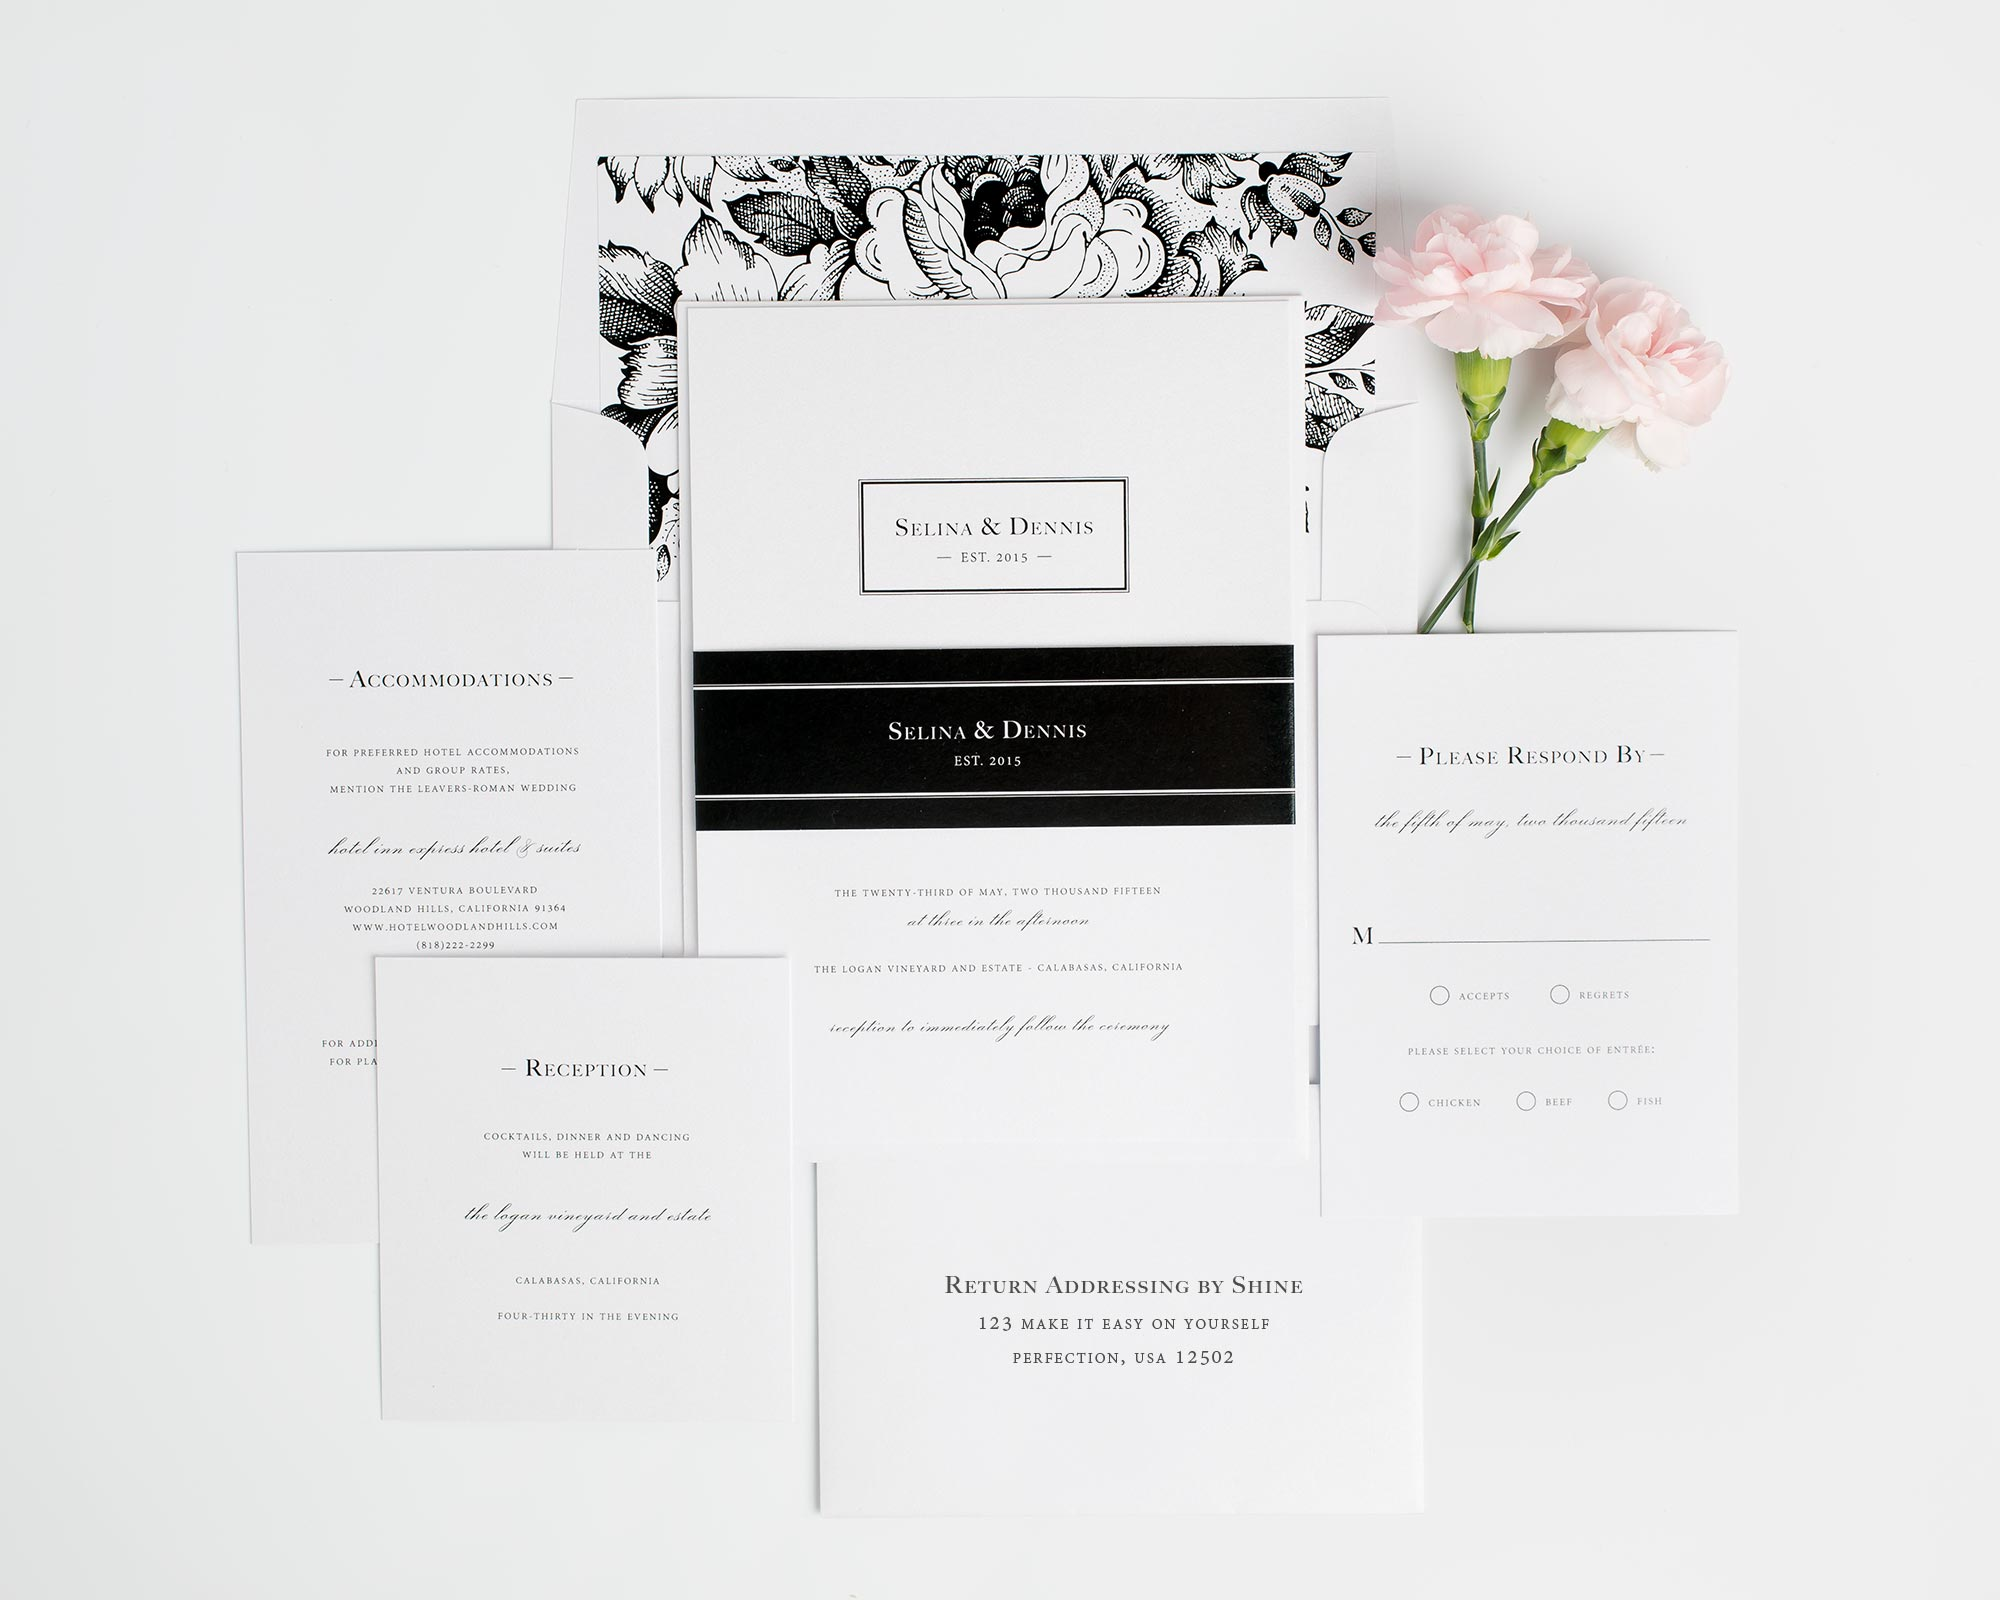 Monogram Wedding Invitations in Black and White